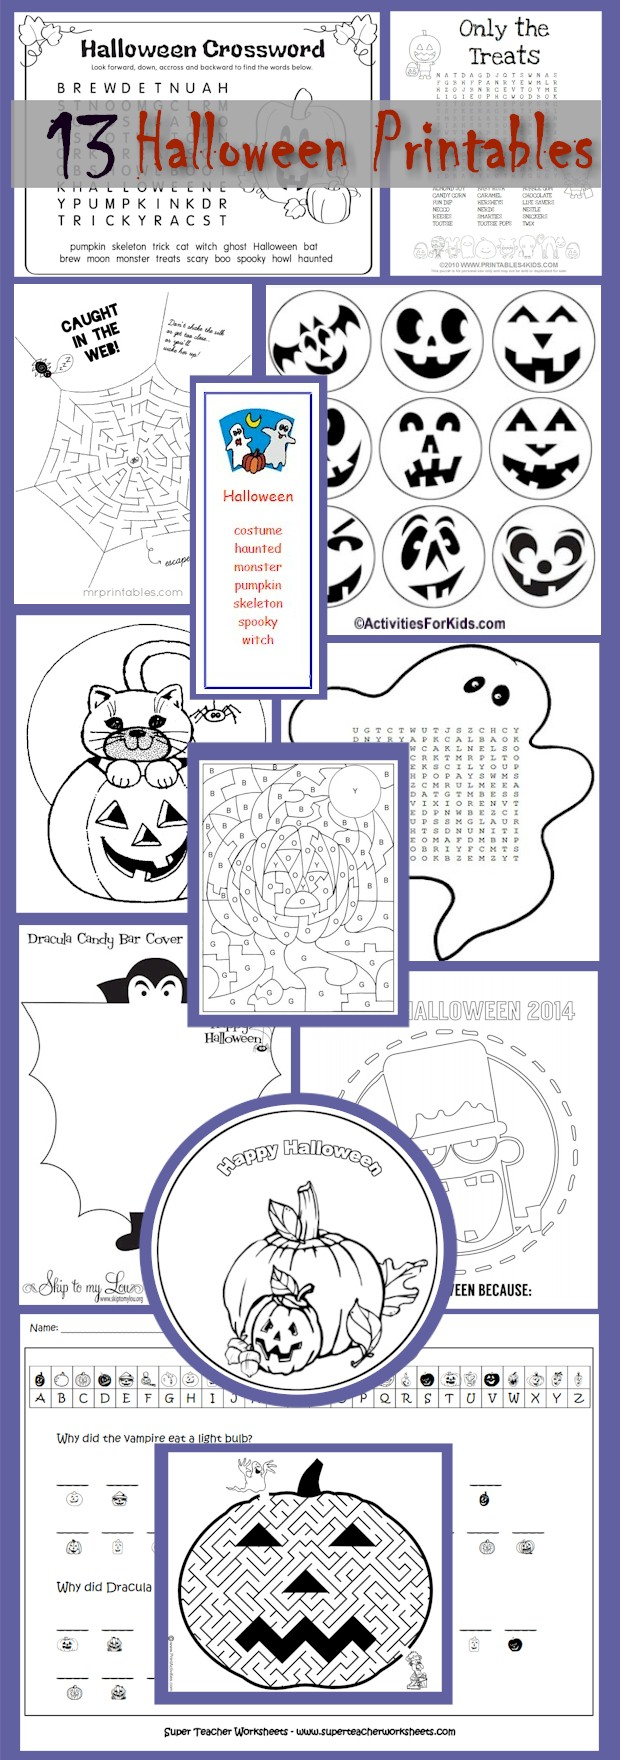 13 Halloween Printouts for kids.  Halloween printables for the classroom.